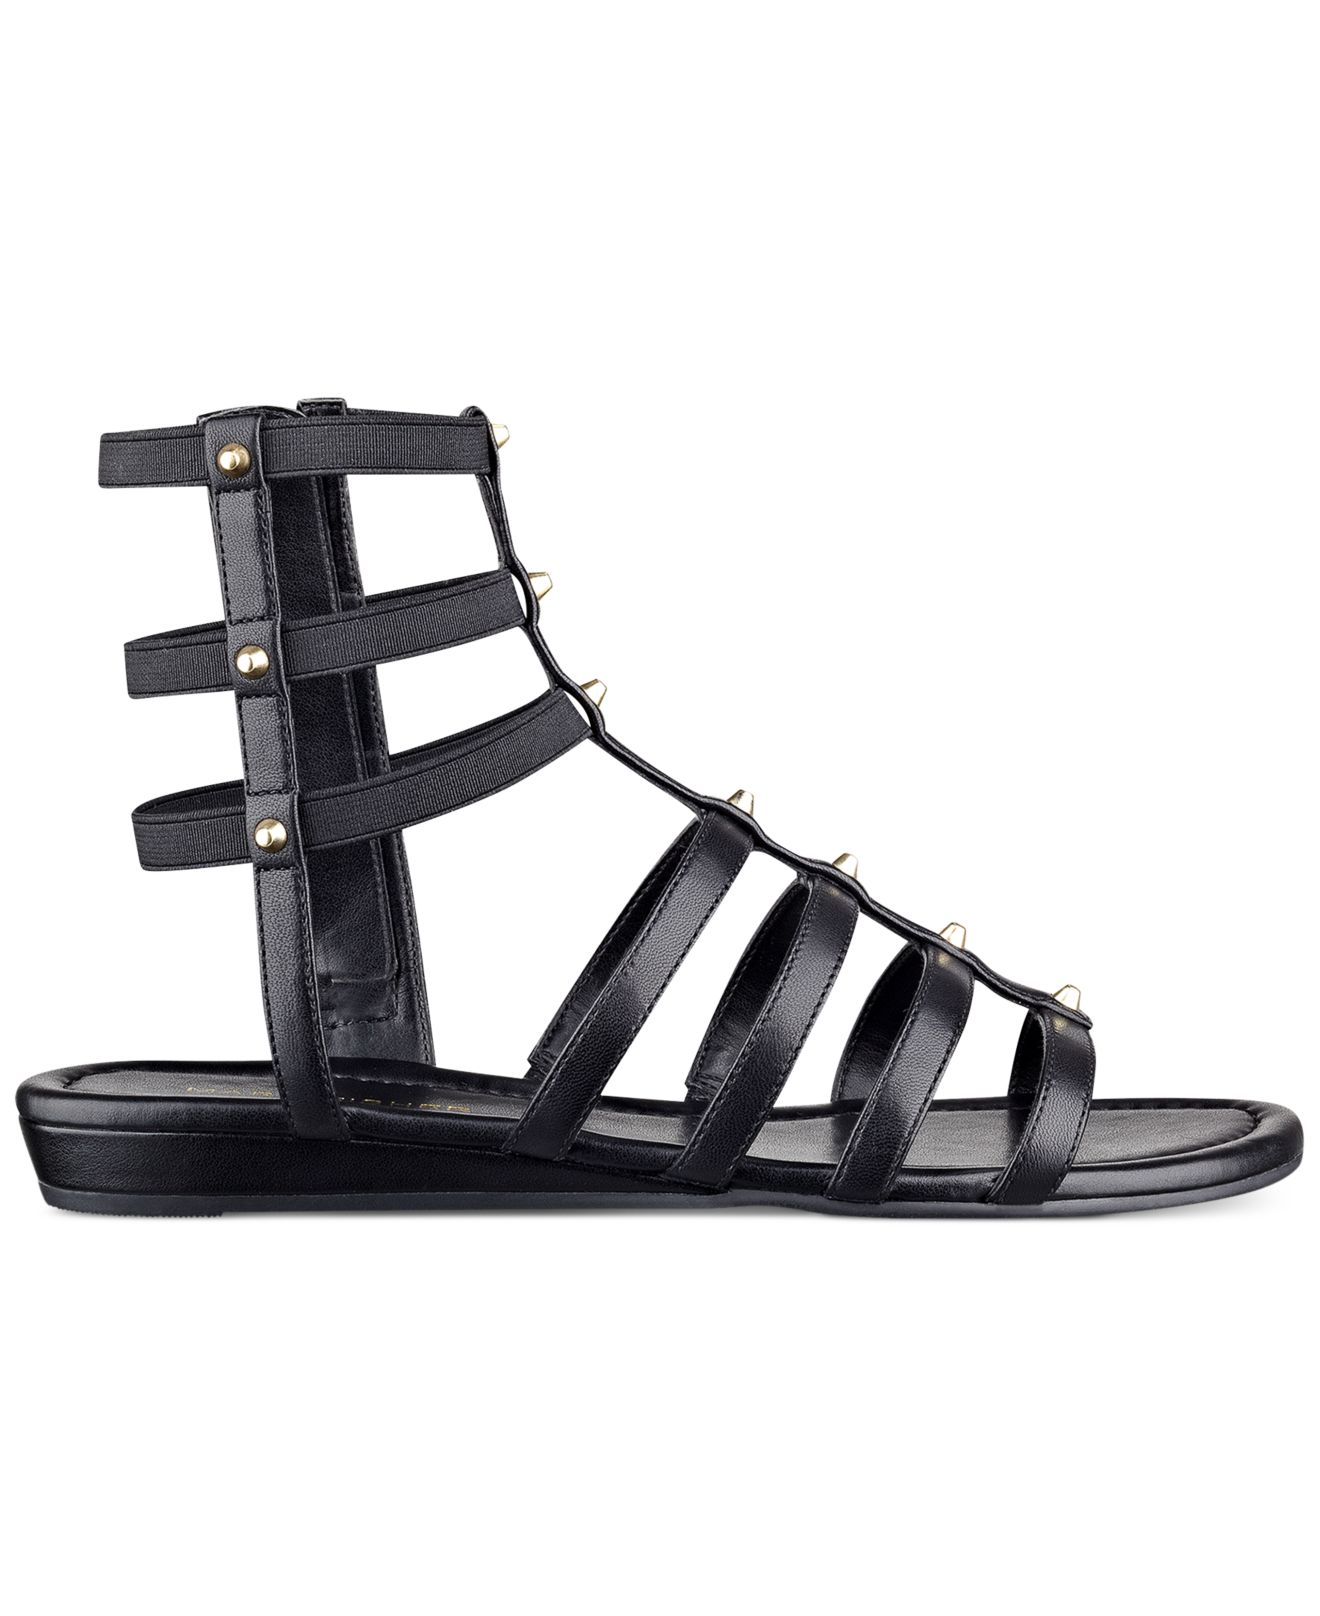 81cfd8a0d48 Gallery. Previously sold at  Macy s · Women s Gladiator Sandals ...